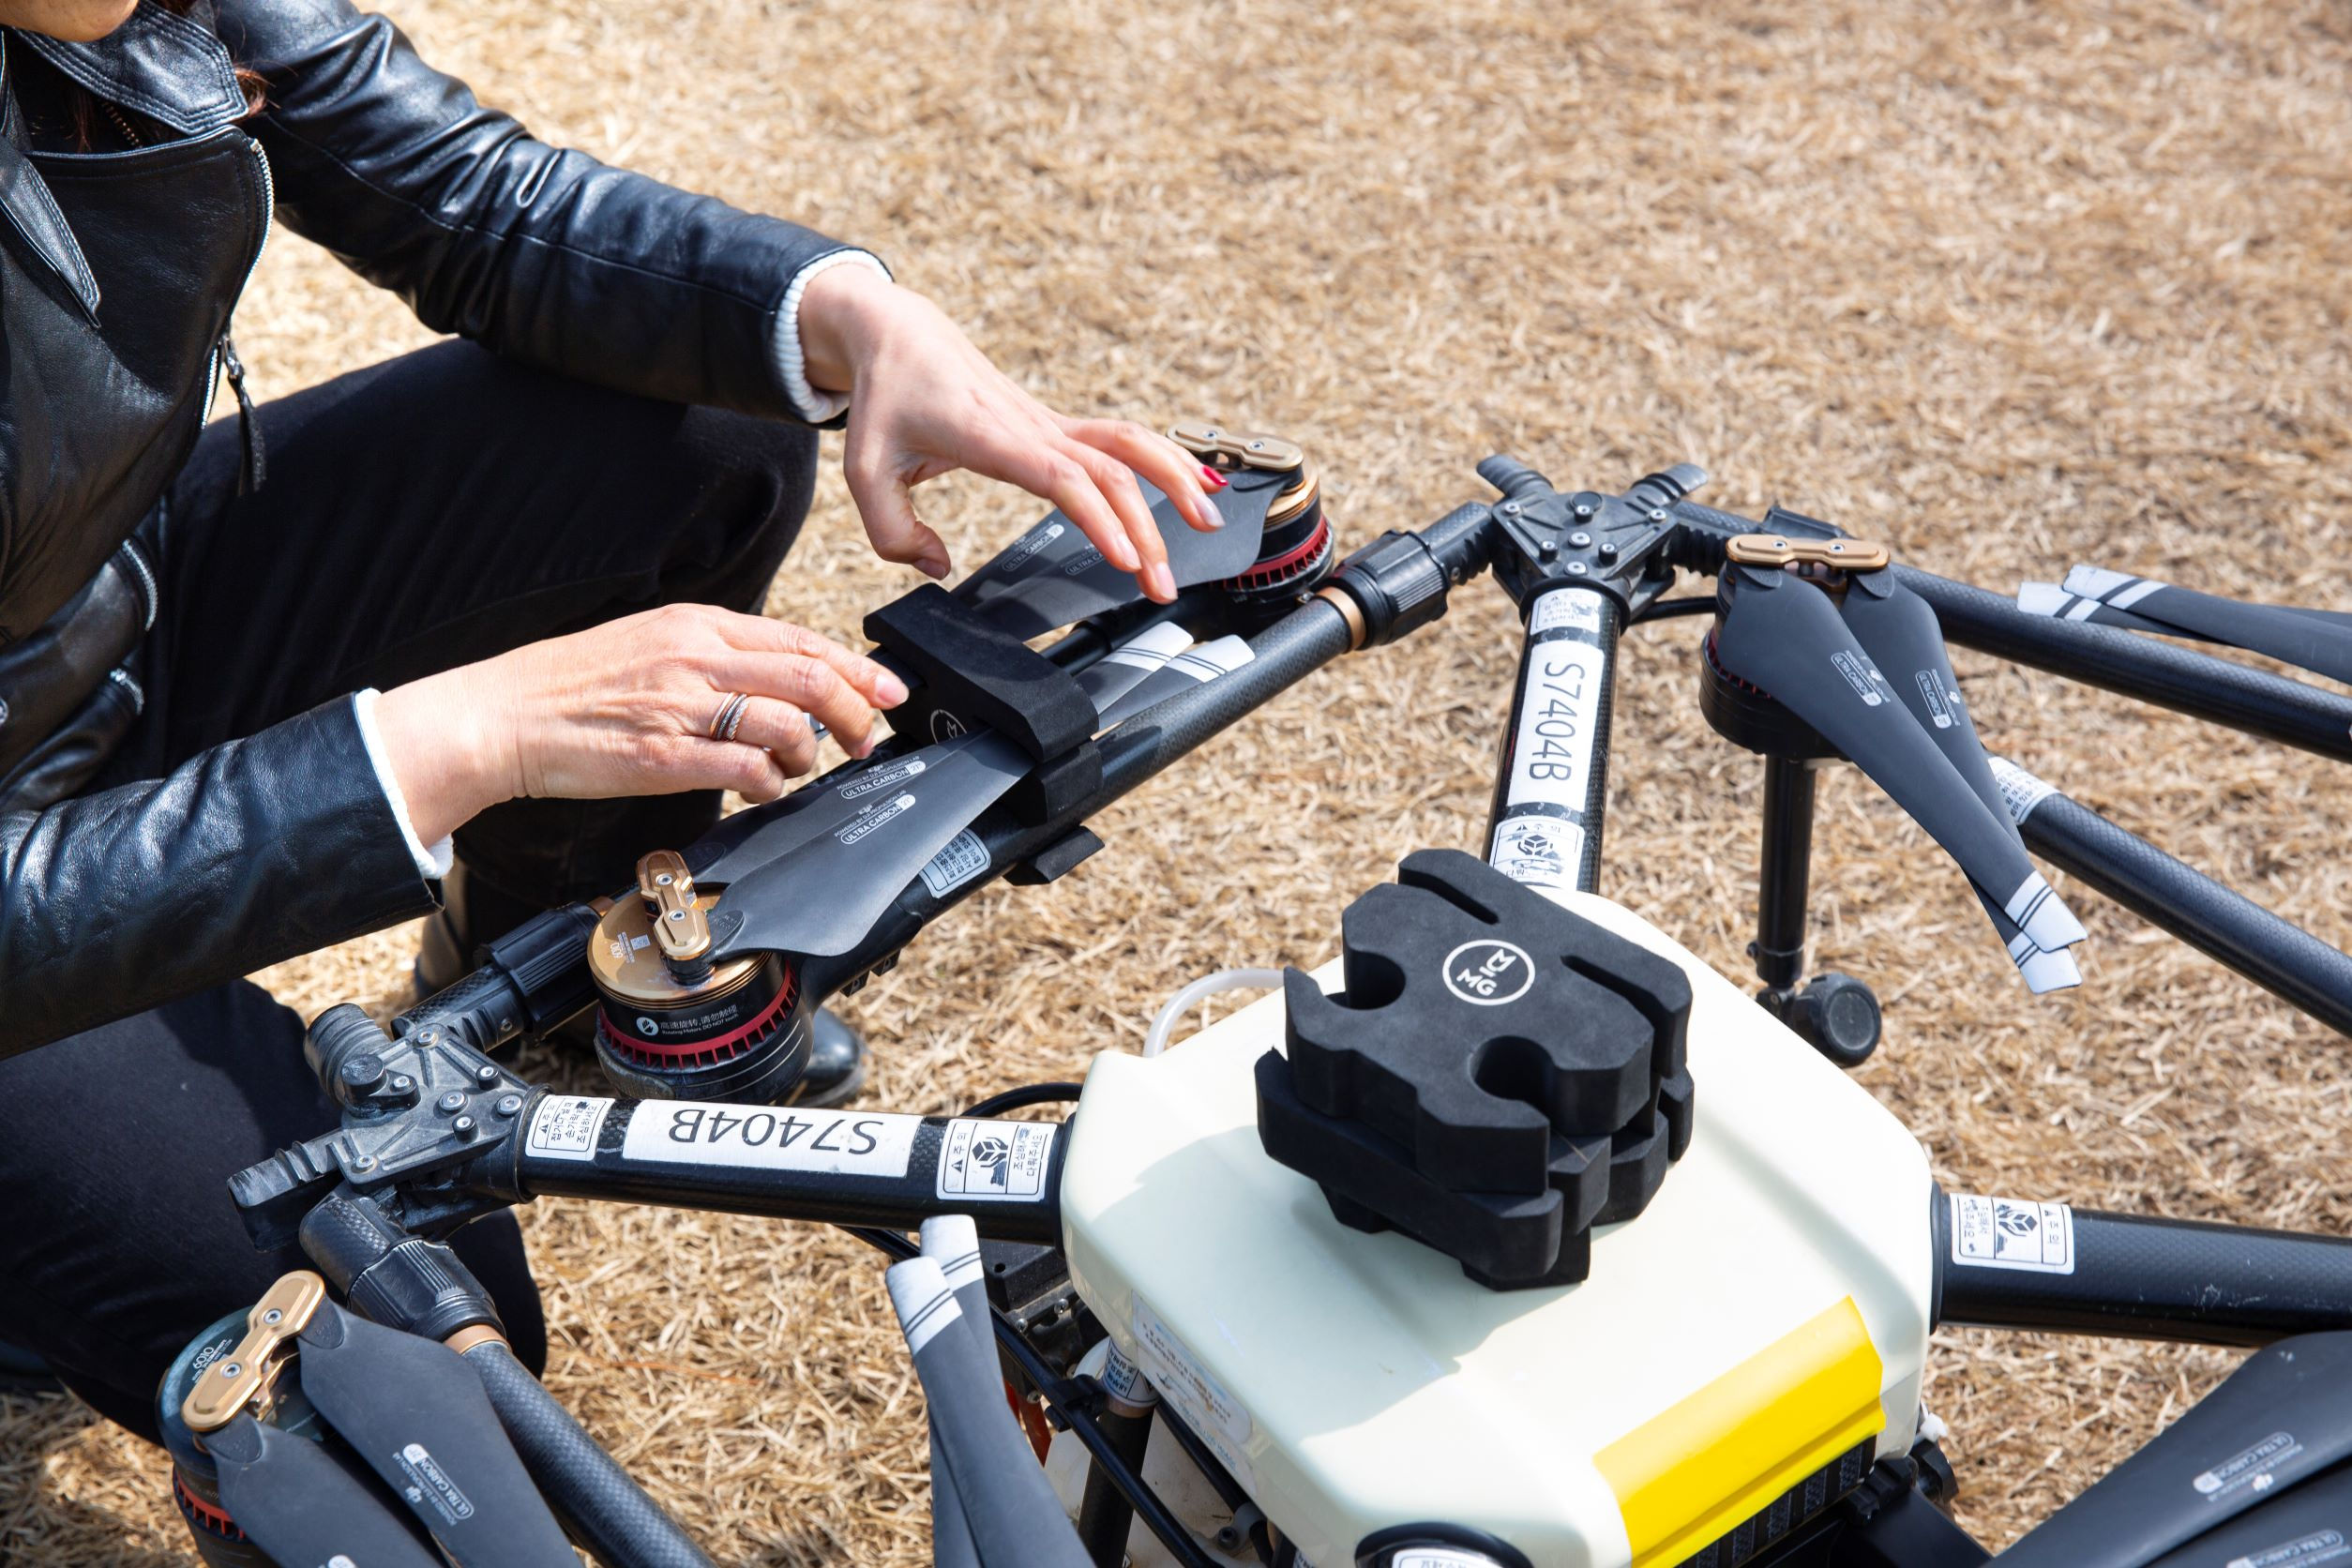 Current drone monitoring systems, pros and cons and how to solve them